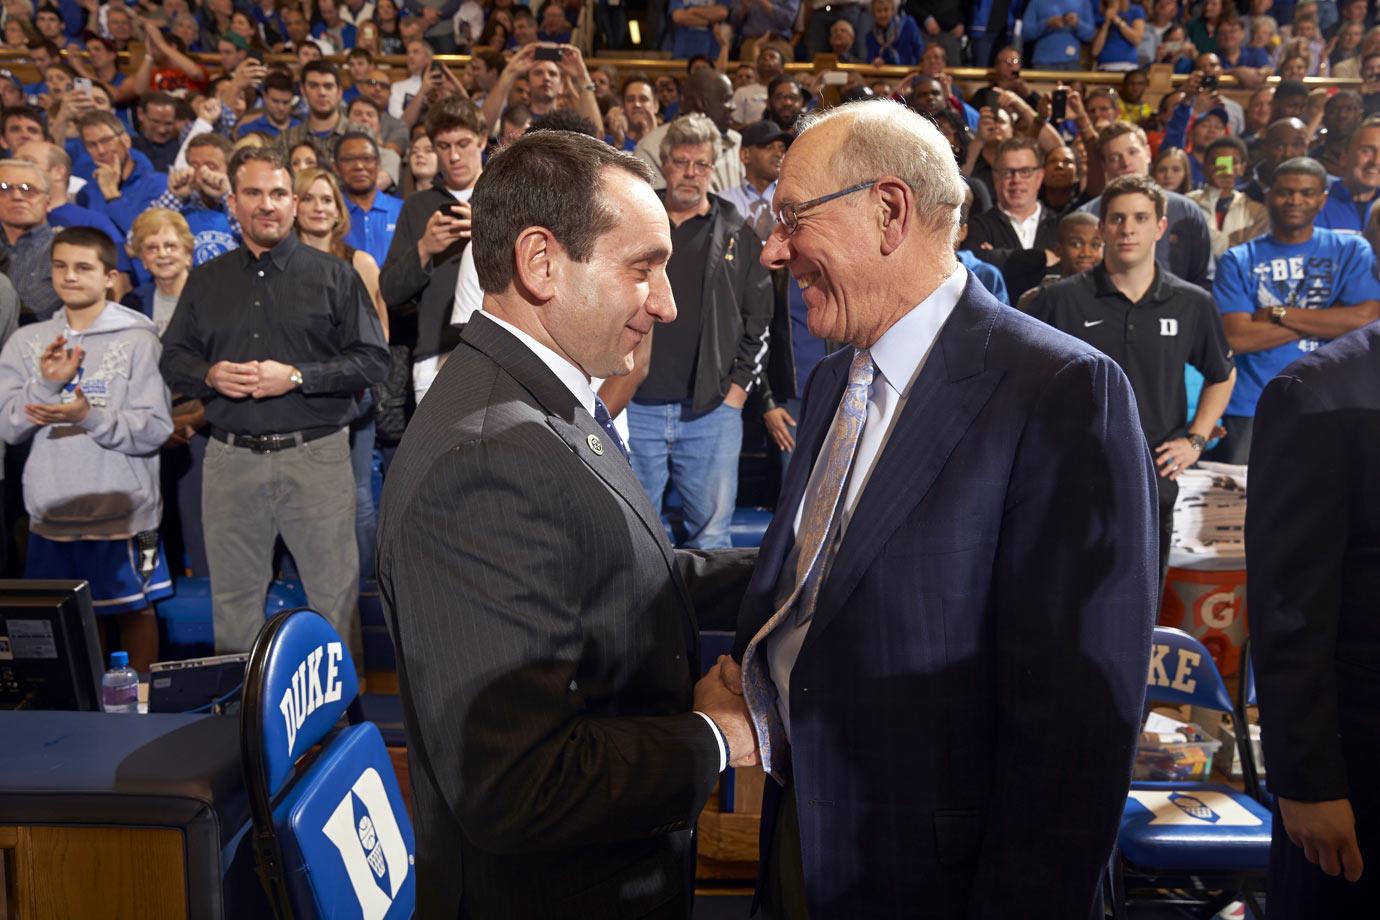 Mike Krzyzewski shakes hands with Jim Boeheim before a game at Cameron Indoor Stadium in 2014.  Duke defeated Syracuse 66-00.